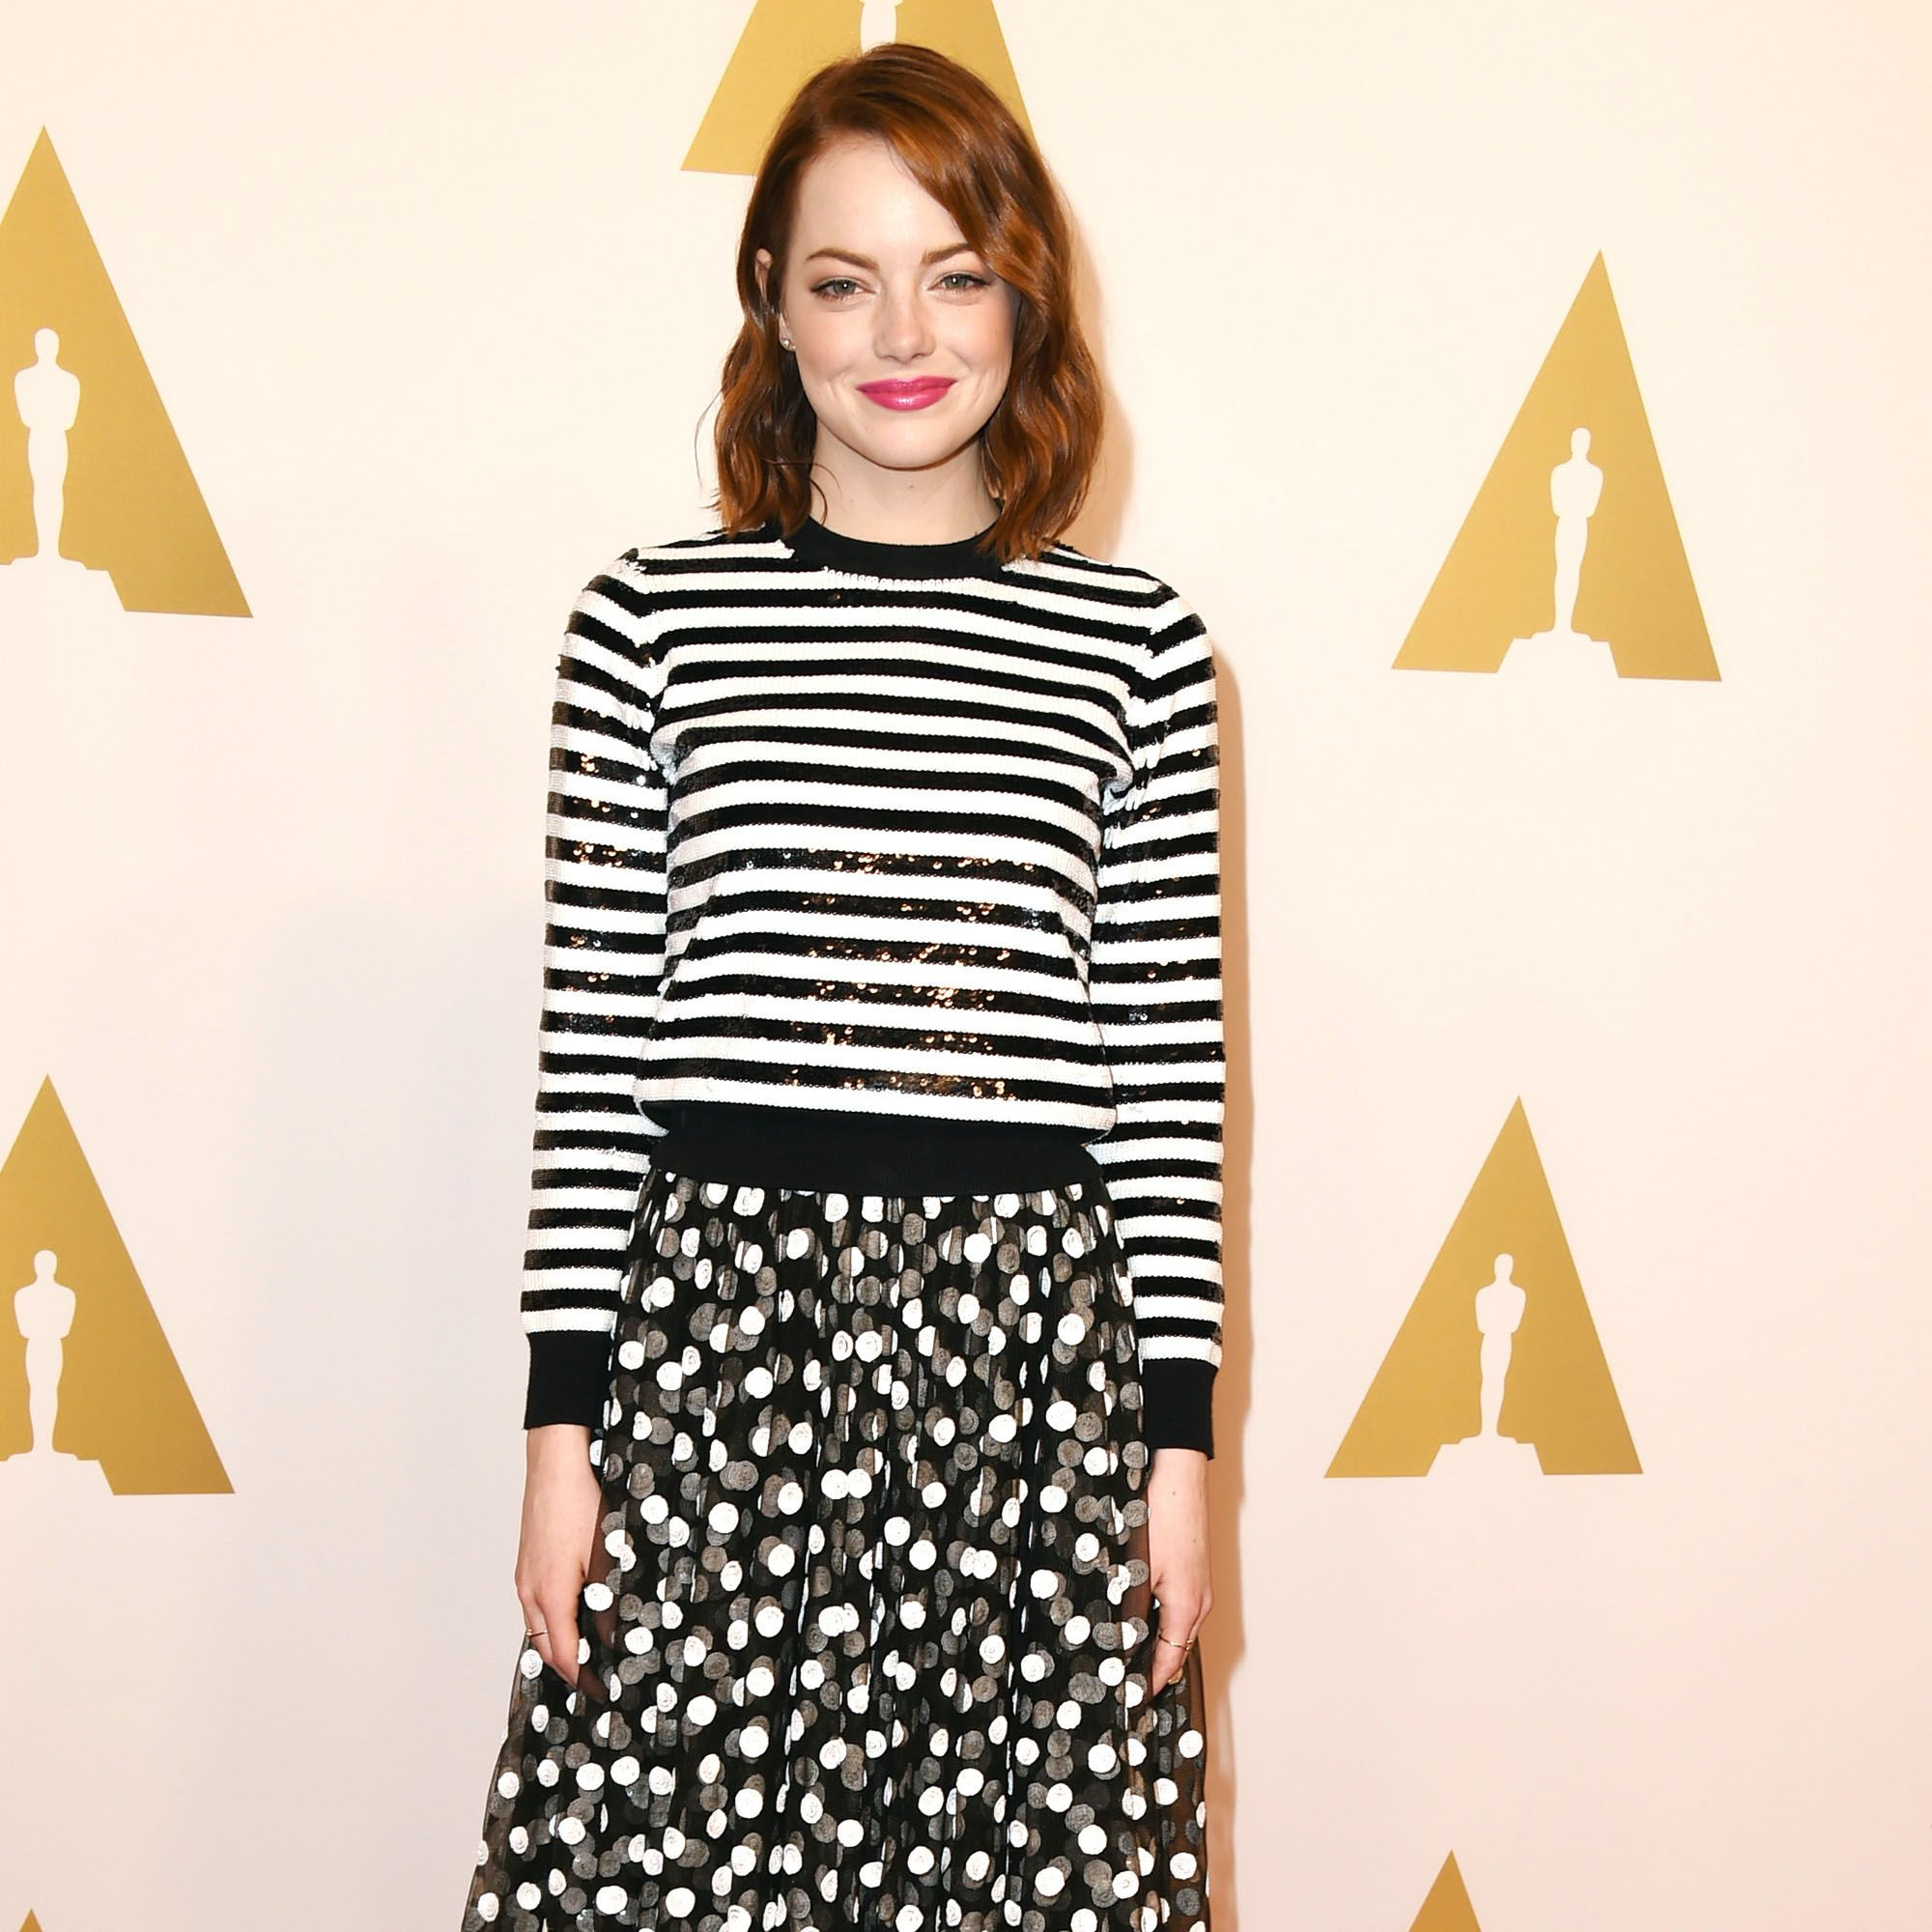 BEVERLY HILLS, CA - FEBRUARY 02:  Emma Stone arrives at the 87th Academy Awards Nominee Luncheon at The Beverly Hilton Hotel on February 2, 2015 in Beverly Hills, California.  (Photo by Steve Granitz/WireImage)